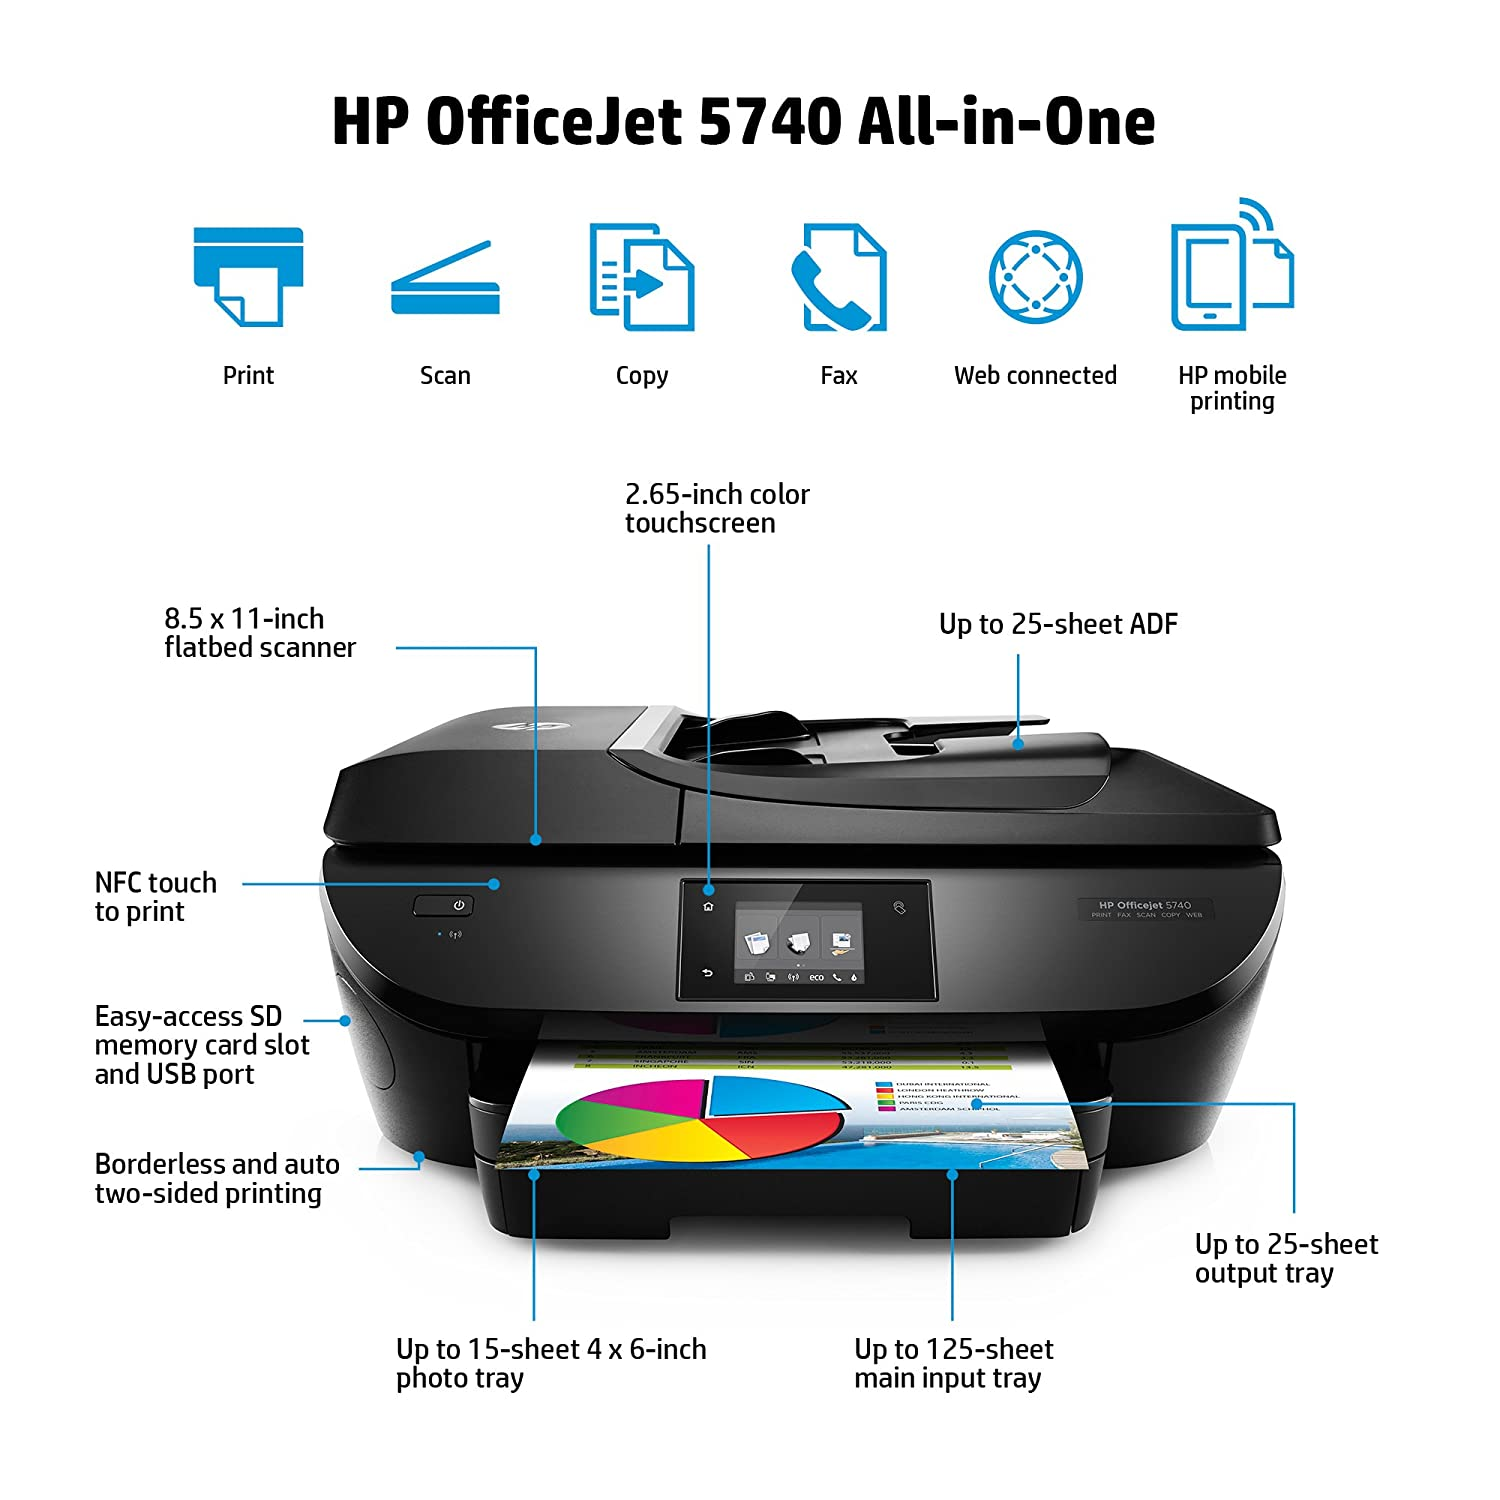 hp 5700 printer manual best setting instruction guide u2022 rh ourk9 co hp procurve 5700 manual hp flexfabric 5700 switch manual